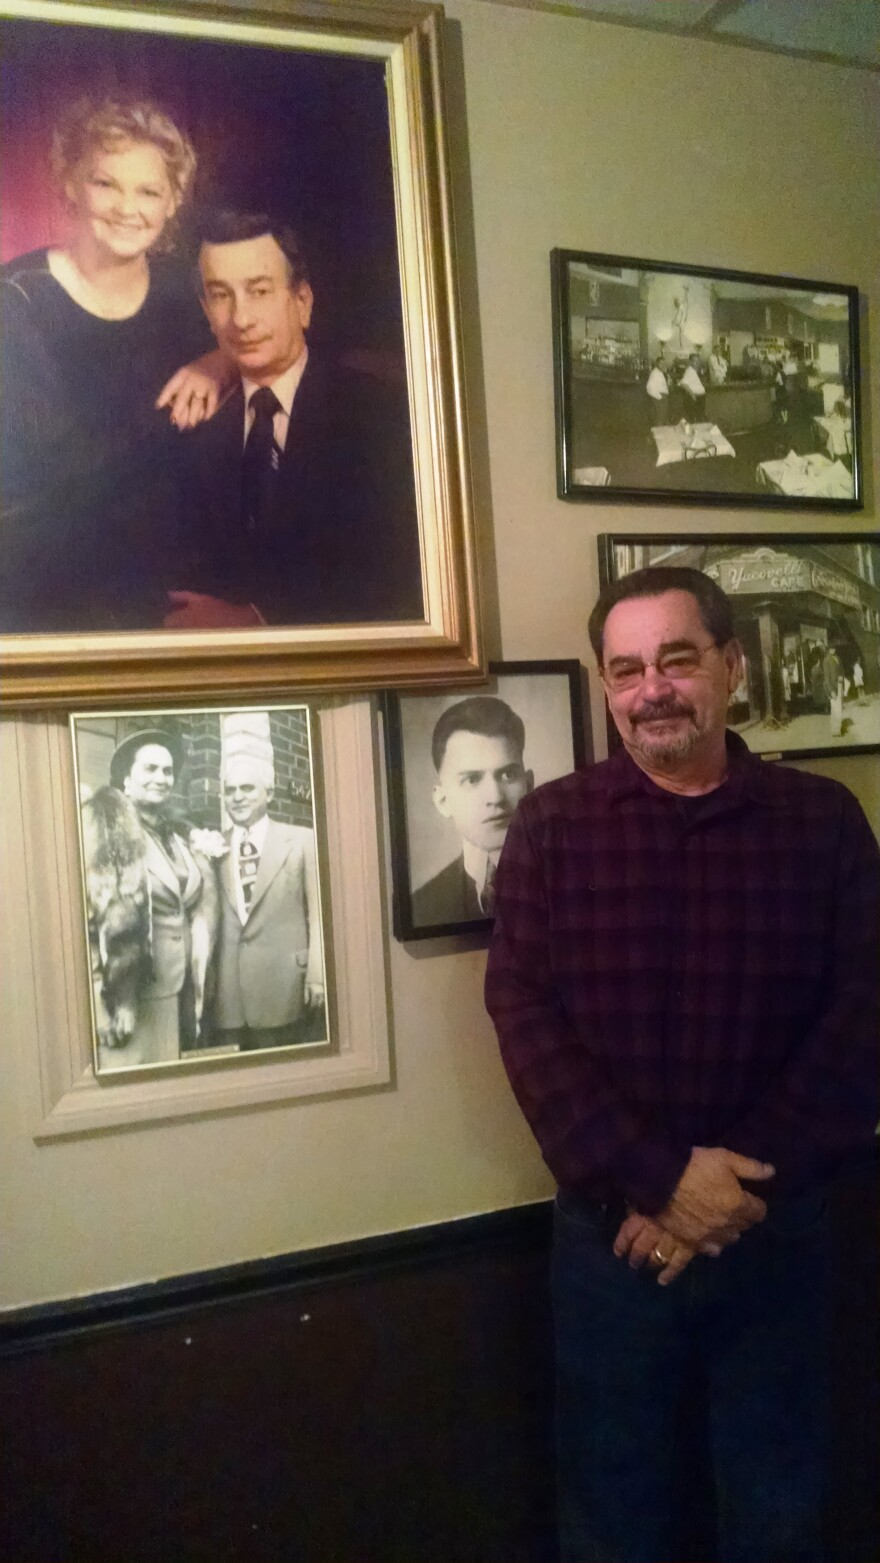 Jack Yacovelli stands besides the pictures of his parents (top) and grandparents (bottom), who were owners of the Yacovelli restaurant before him.